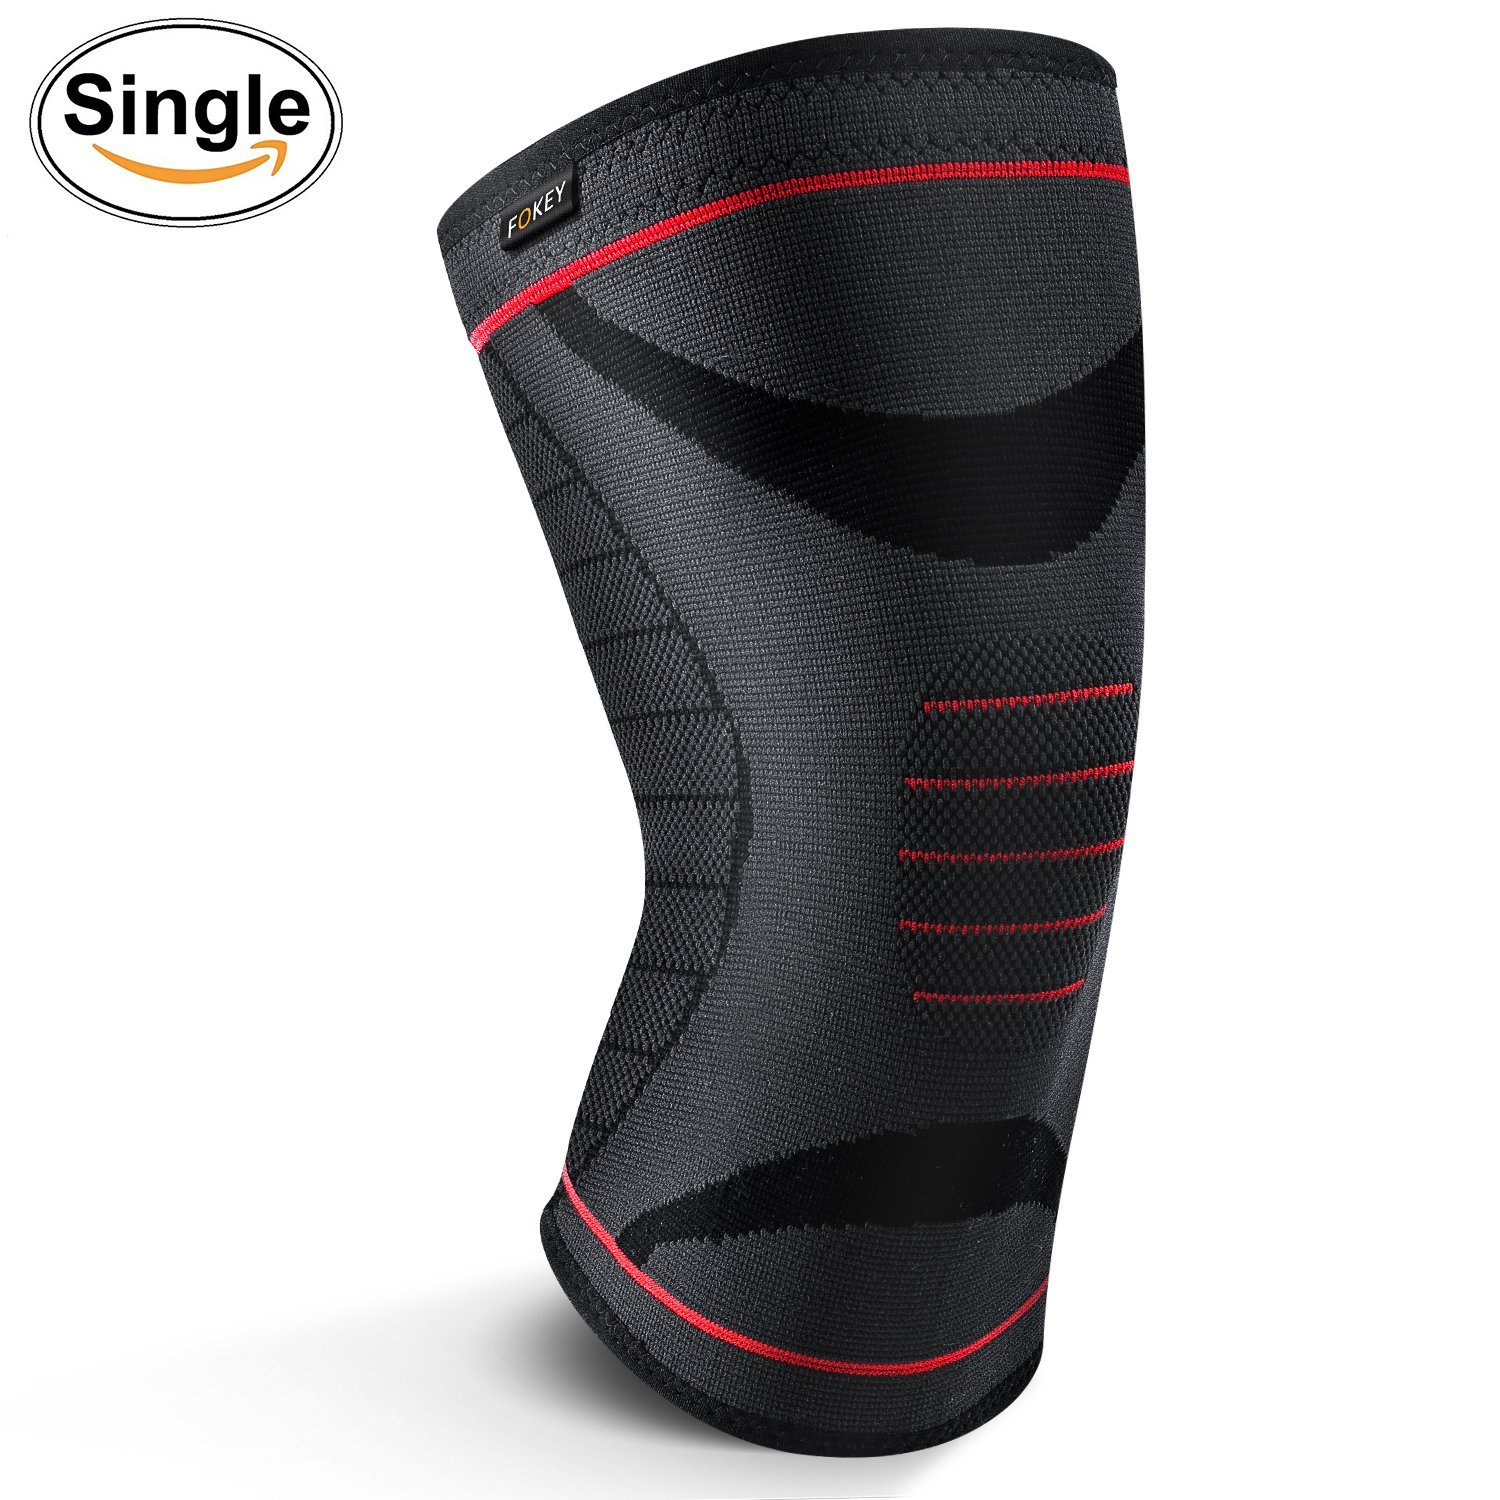 c61c53f4bd 5 Best Knee Brace for Running Reviews 2019 In depth Guide